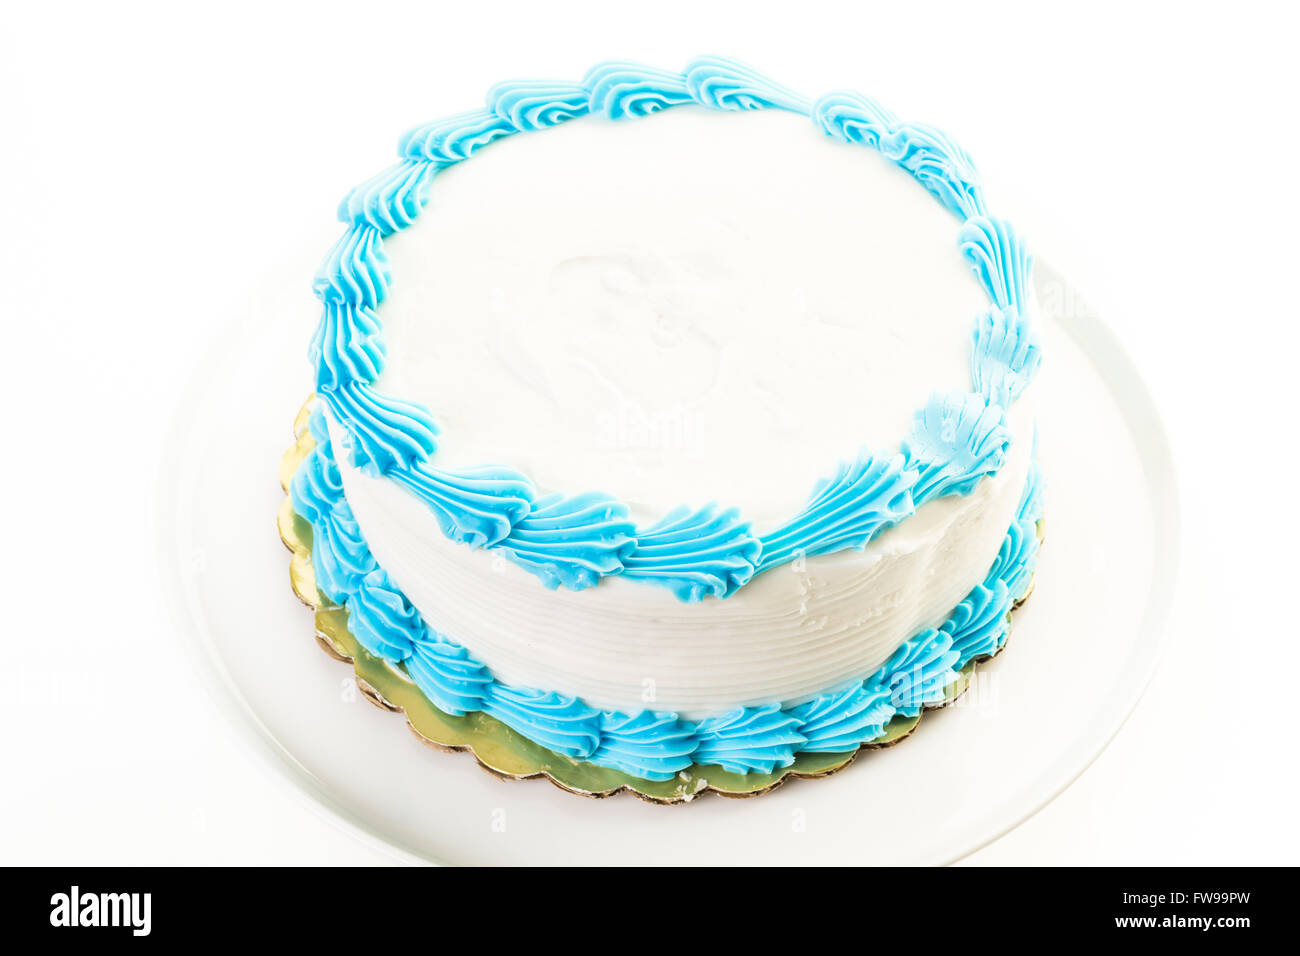 Simple white Birthday cake with white and blue icing Stock Photo